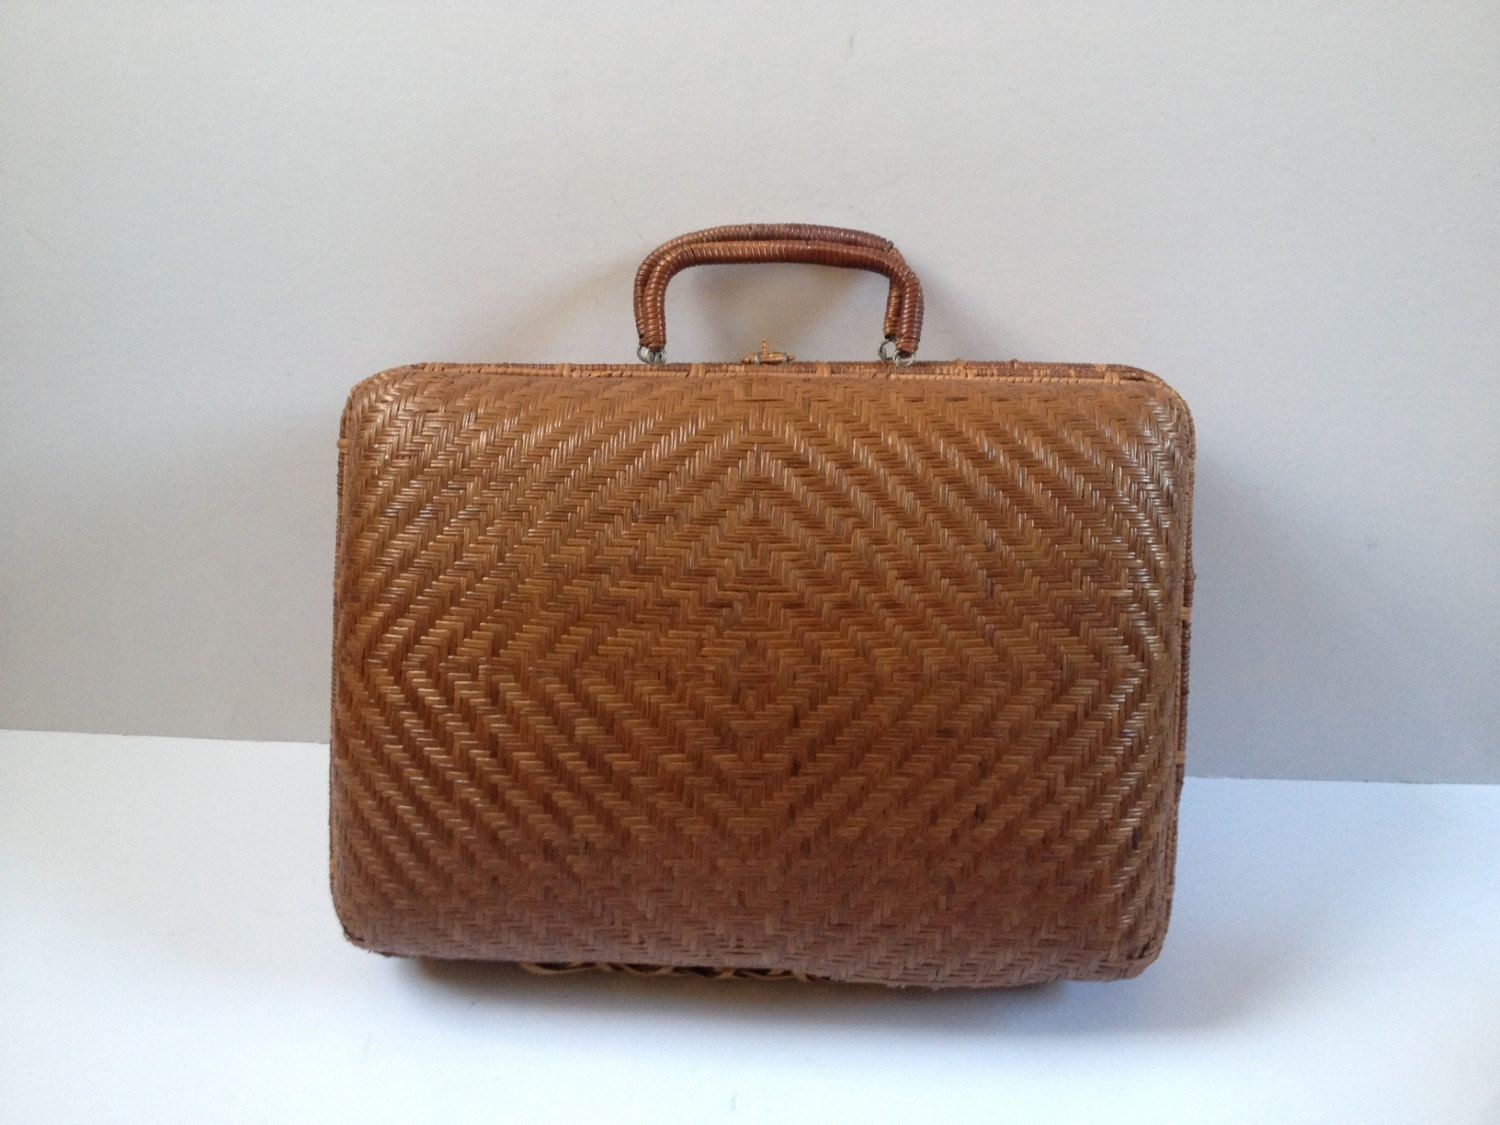 Vintage French Wicker Suitcase Small Wicker Suitcase Woven Suitcase